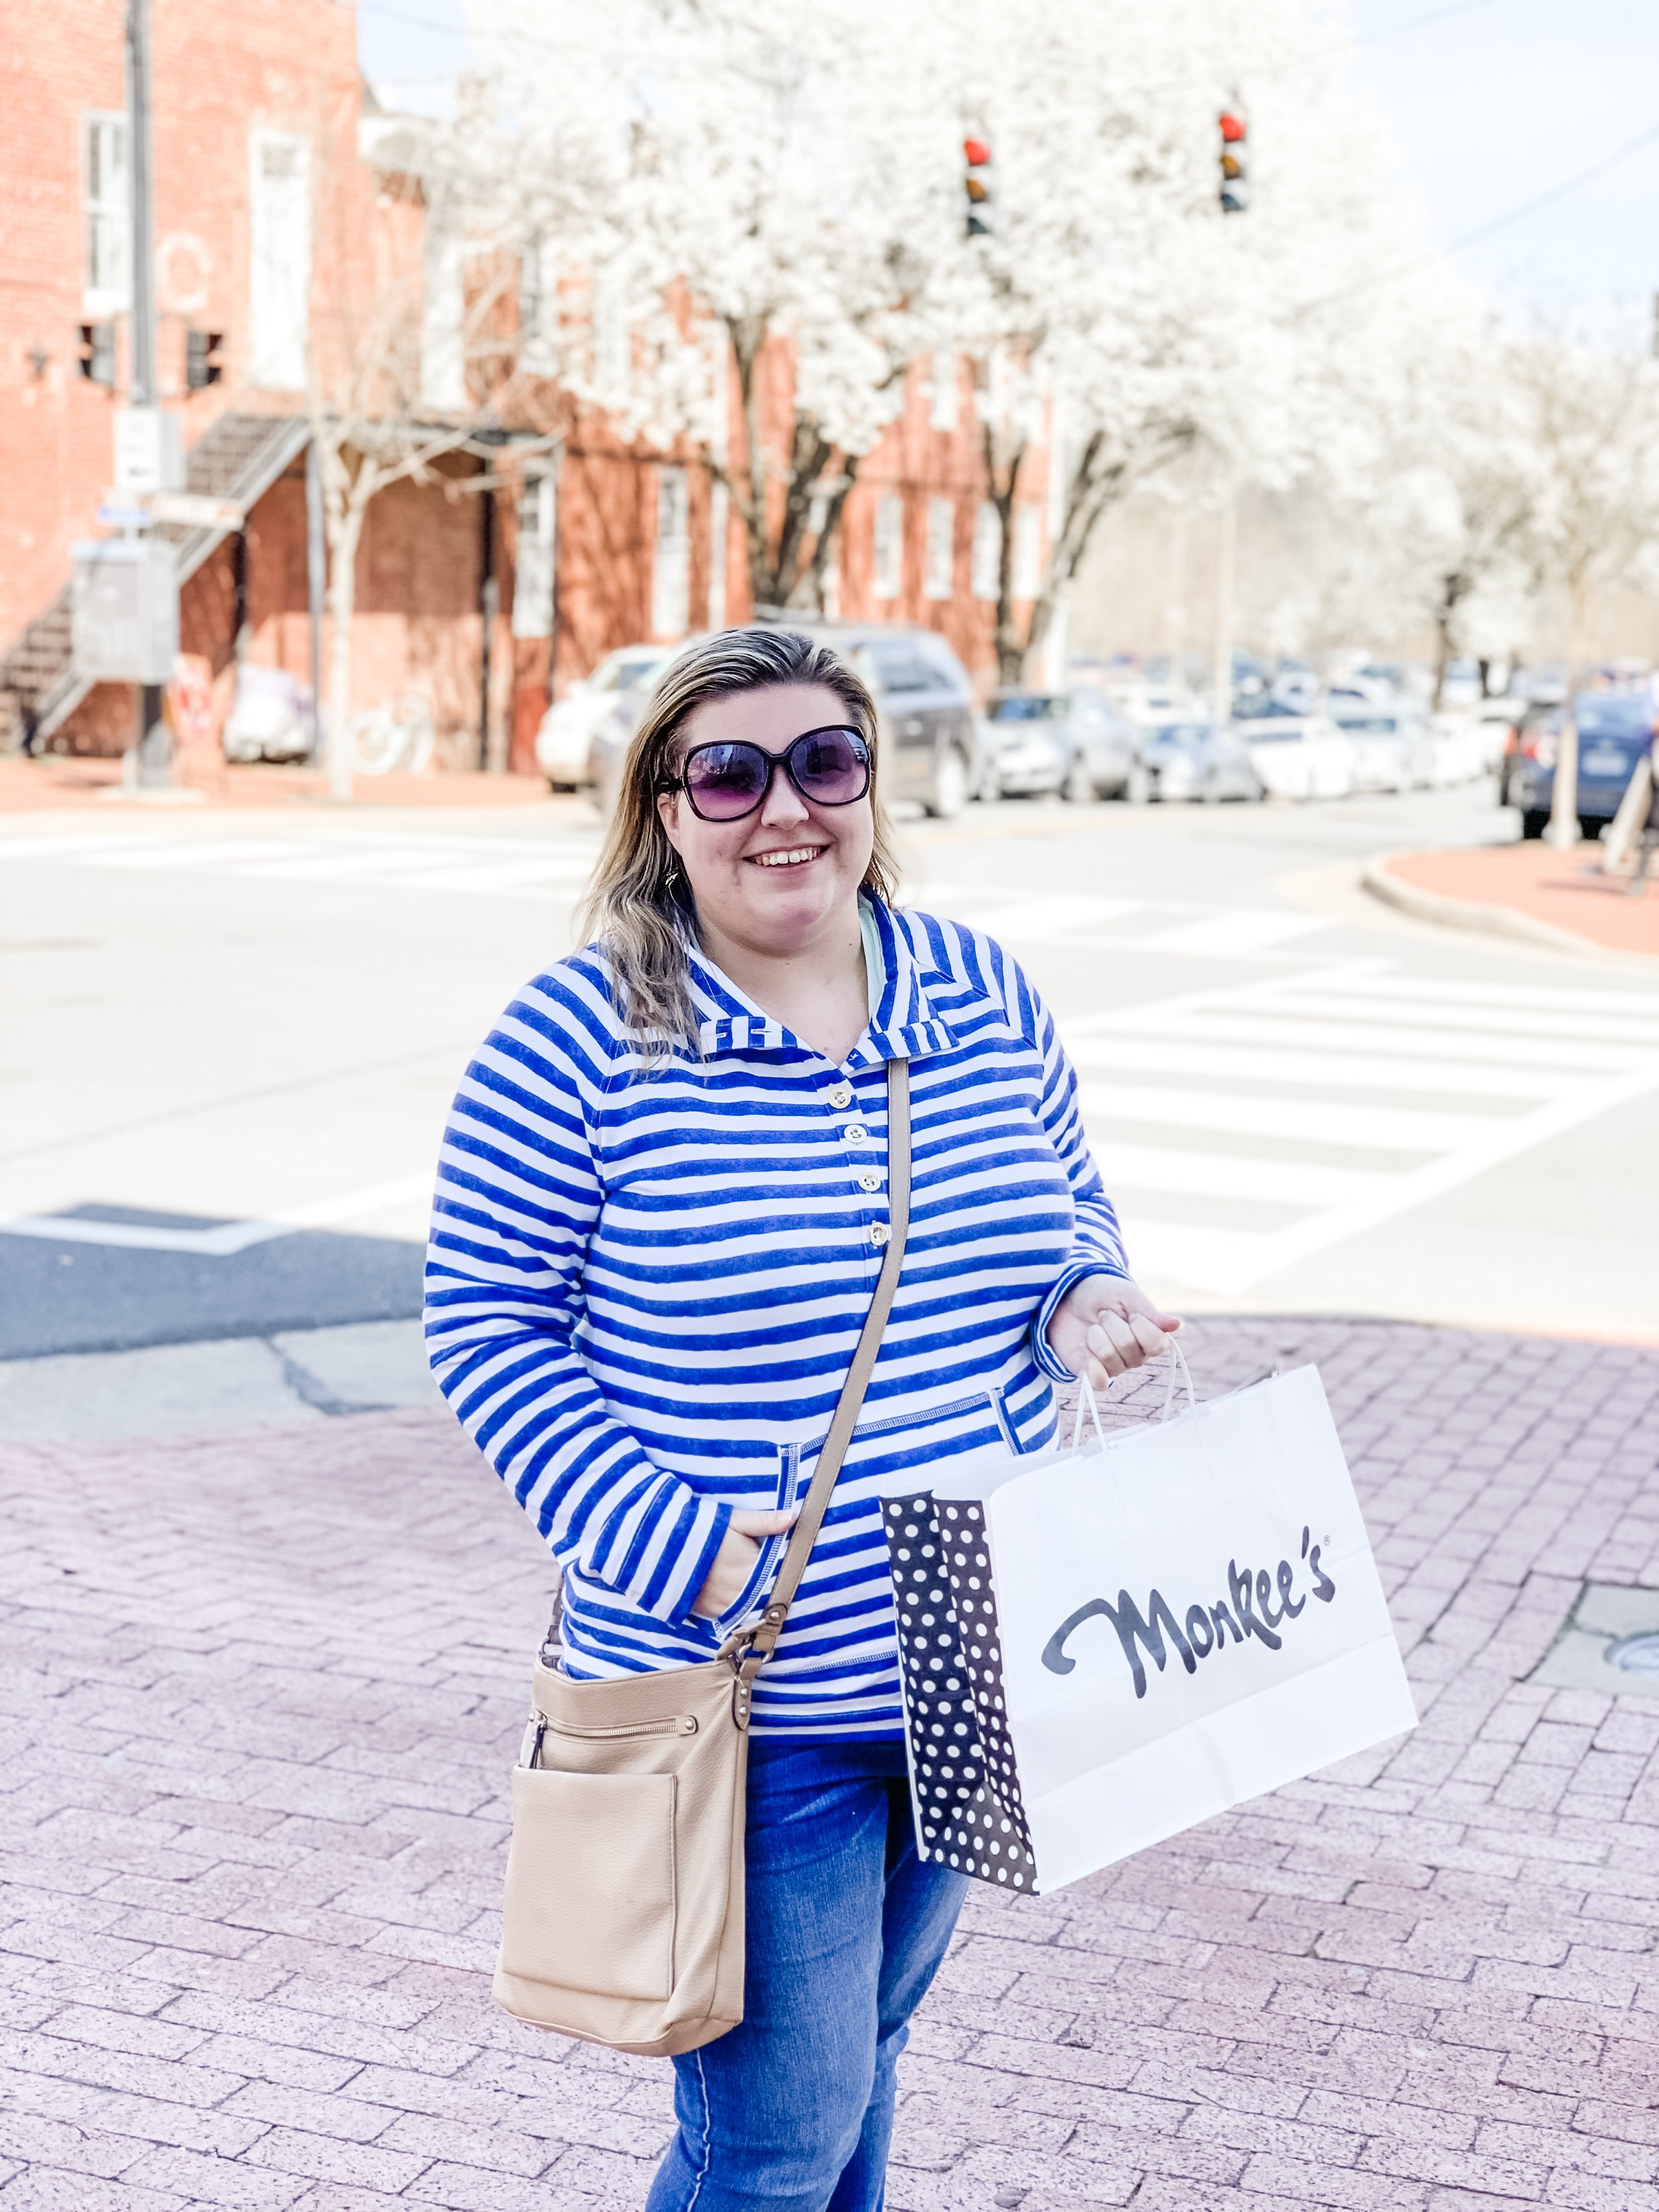 I absolutely love supporting my favorite downtown Fredericksburg shop,  Monkee's . They have the best clothes!